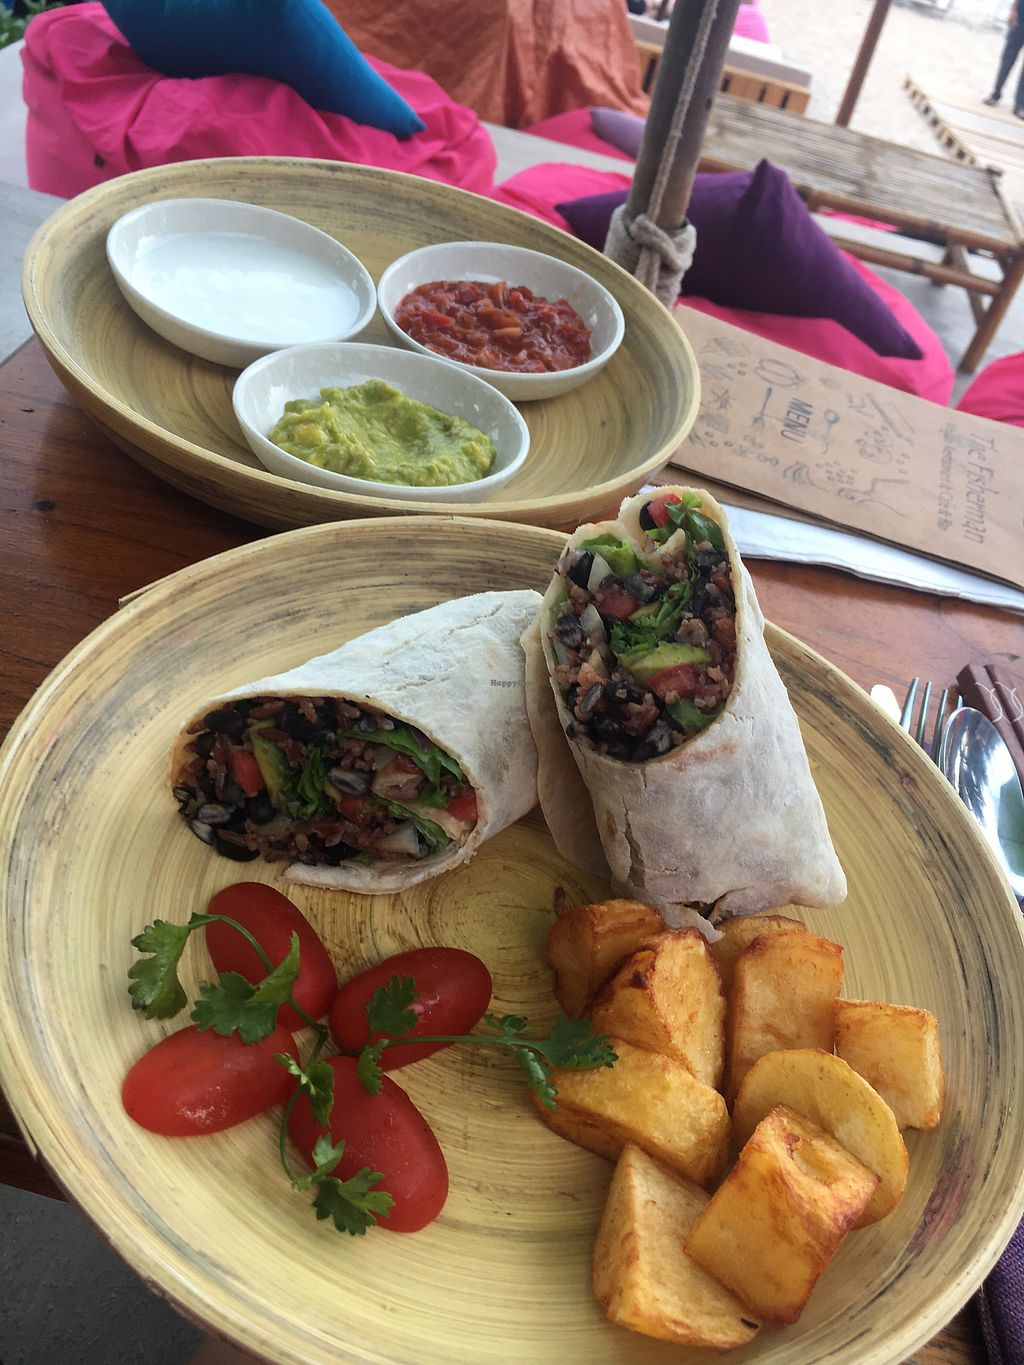 """Photo of The Fisherman Vegan Restaurant   by <a href=""""/members/profile/Tisa93"""">Tisa93</a> <br/>Those potato's were heaven. Such a good Mexican wrap  <br/> May 5, 2018  - <a href='/contact/abuse/image/113002/395259'>Report</a>"""